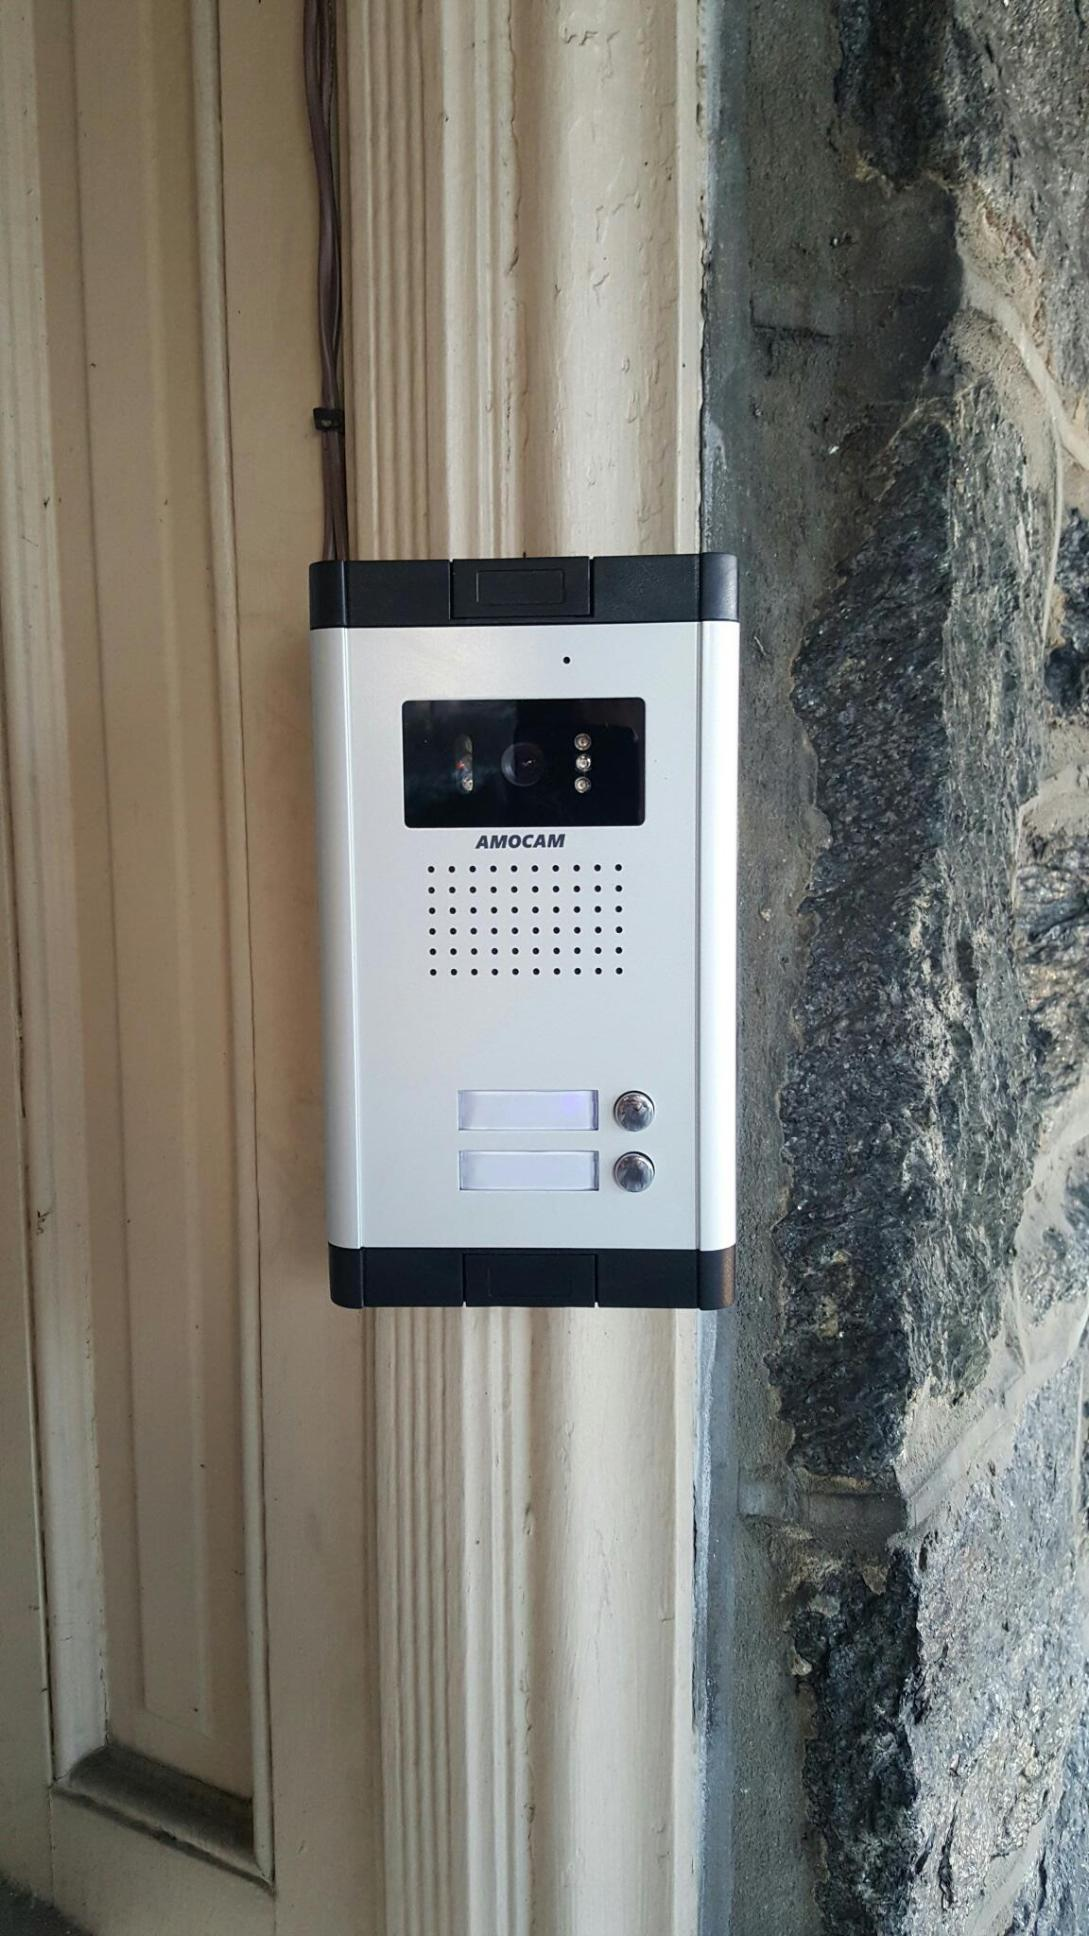 intercom systems - apartment building